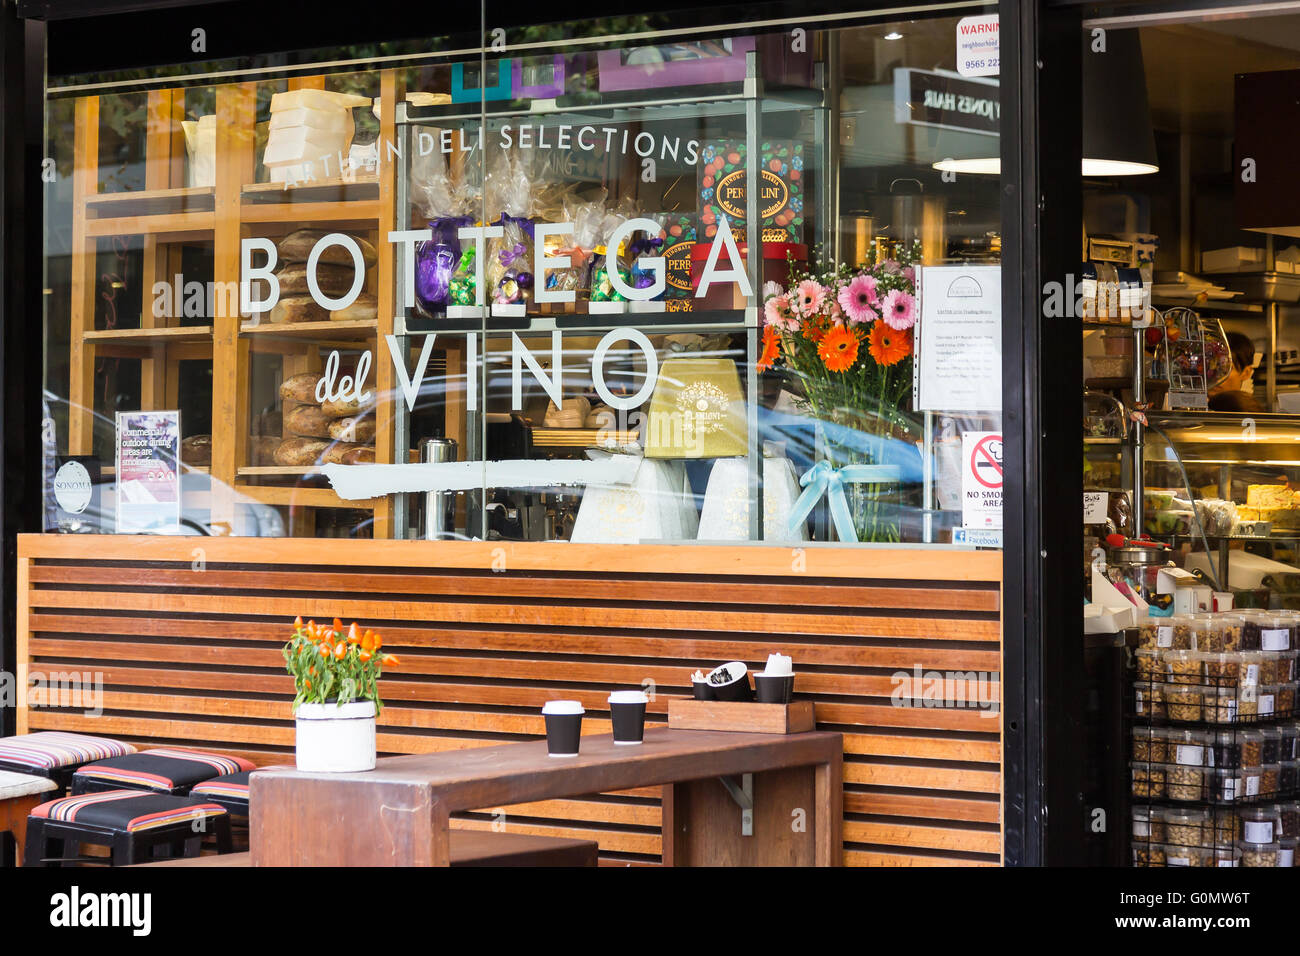 Bottega del Vino, Macleay Street, Potts Point, Sydney, NSW, Australia. Immagini Stock